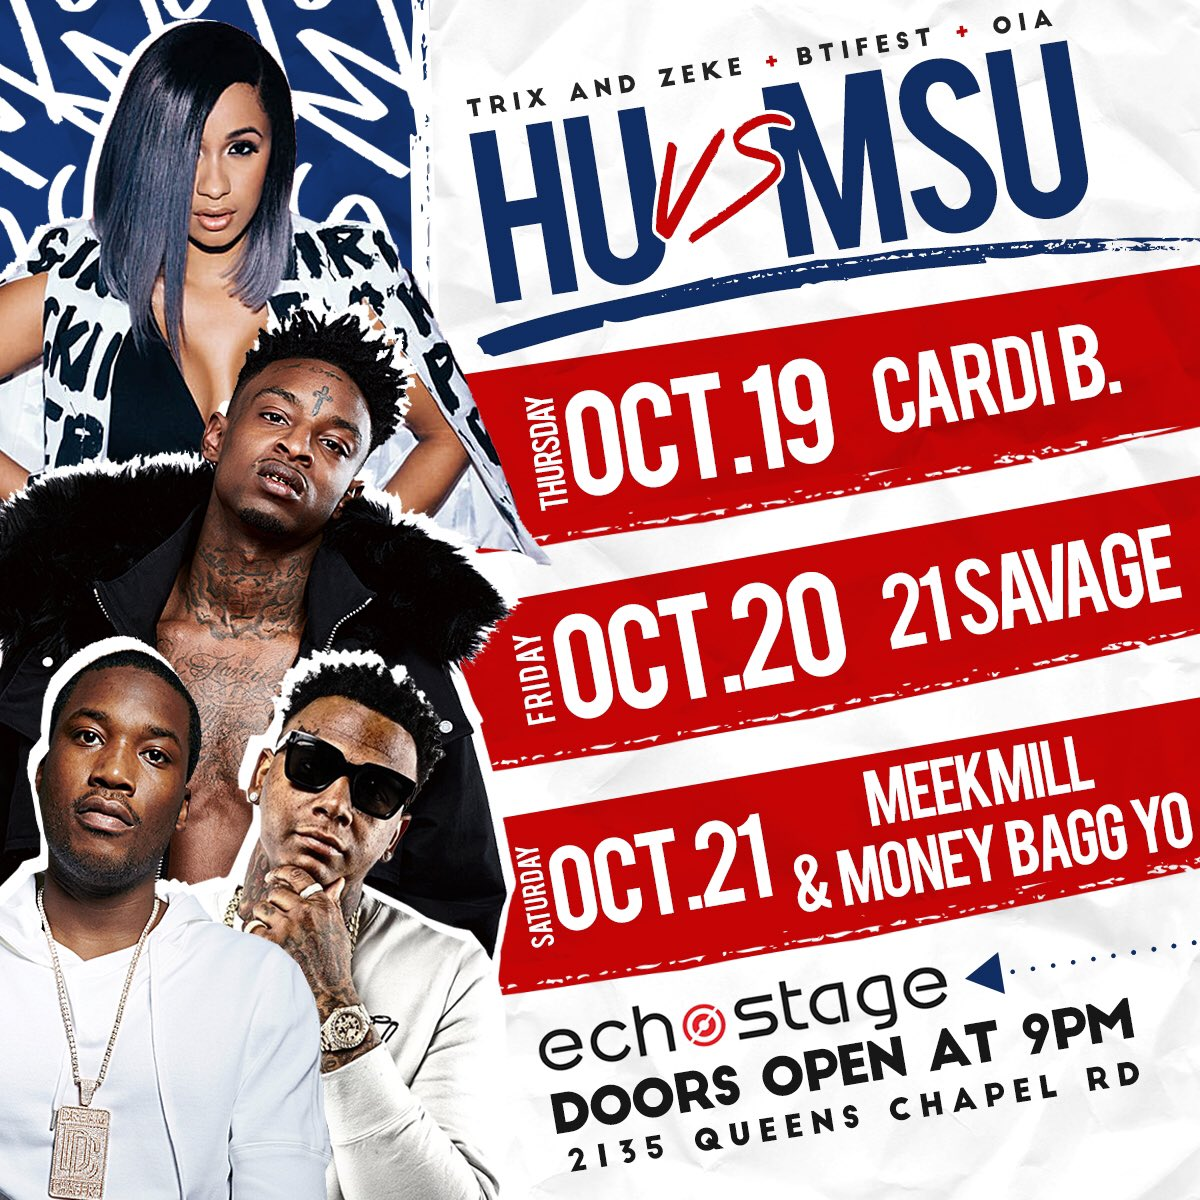 #HUvsMSU Weekend Starts TONIGHT at Echostage in DC w: Cardi B! #MorganState #HowardU<br>http://pic.twitter.com/ByCL3tTDjg